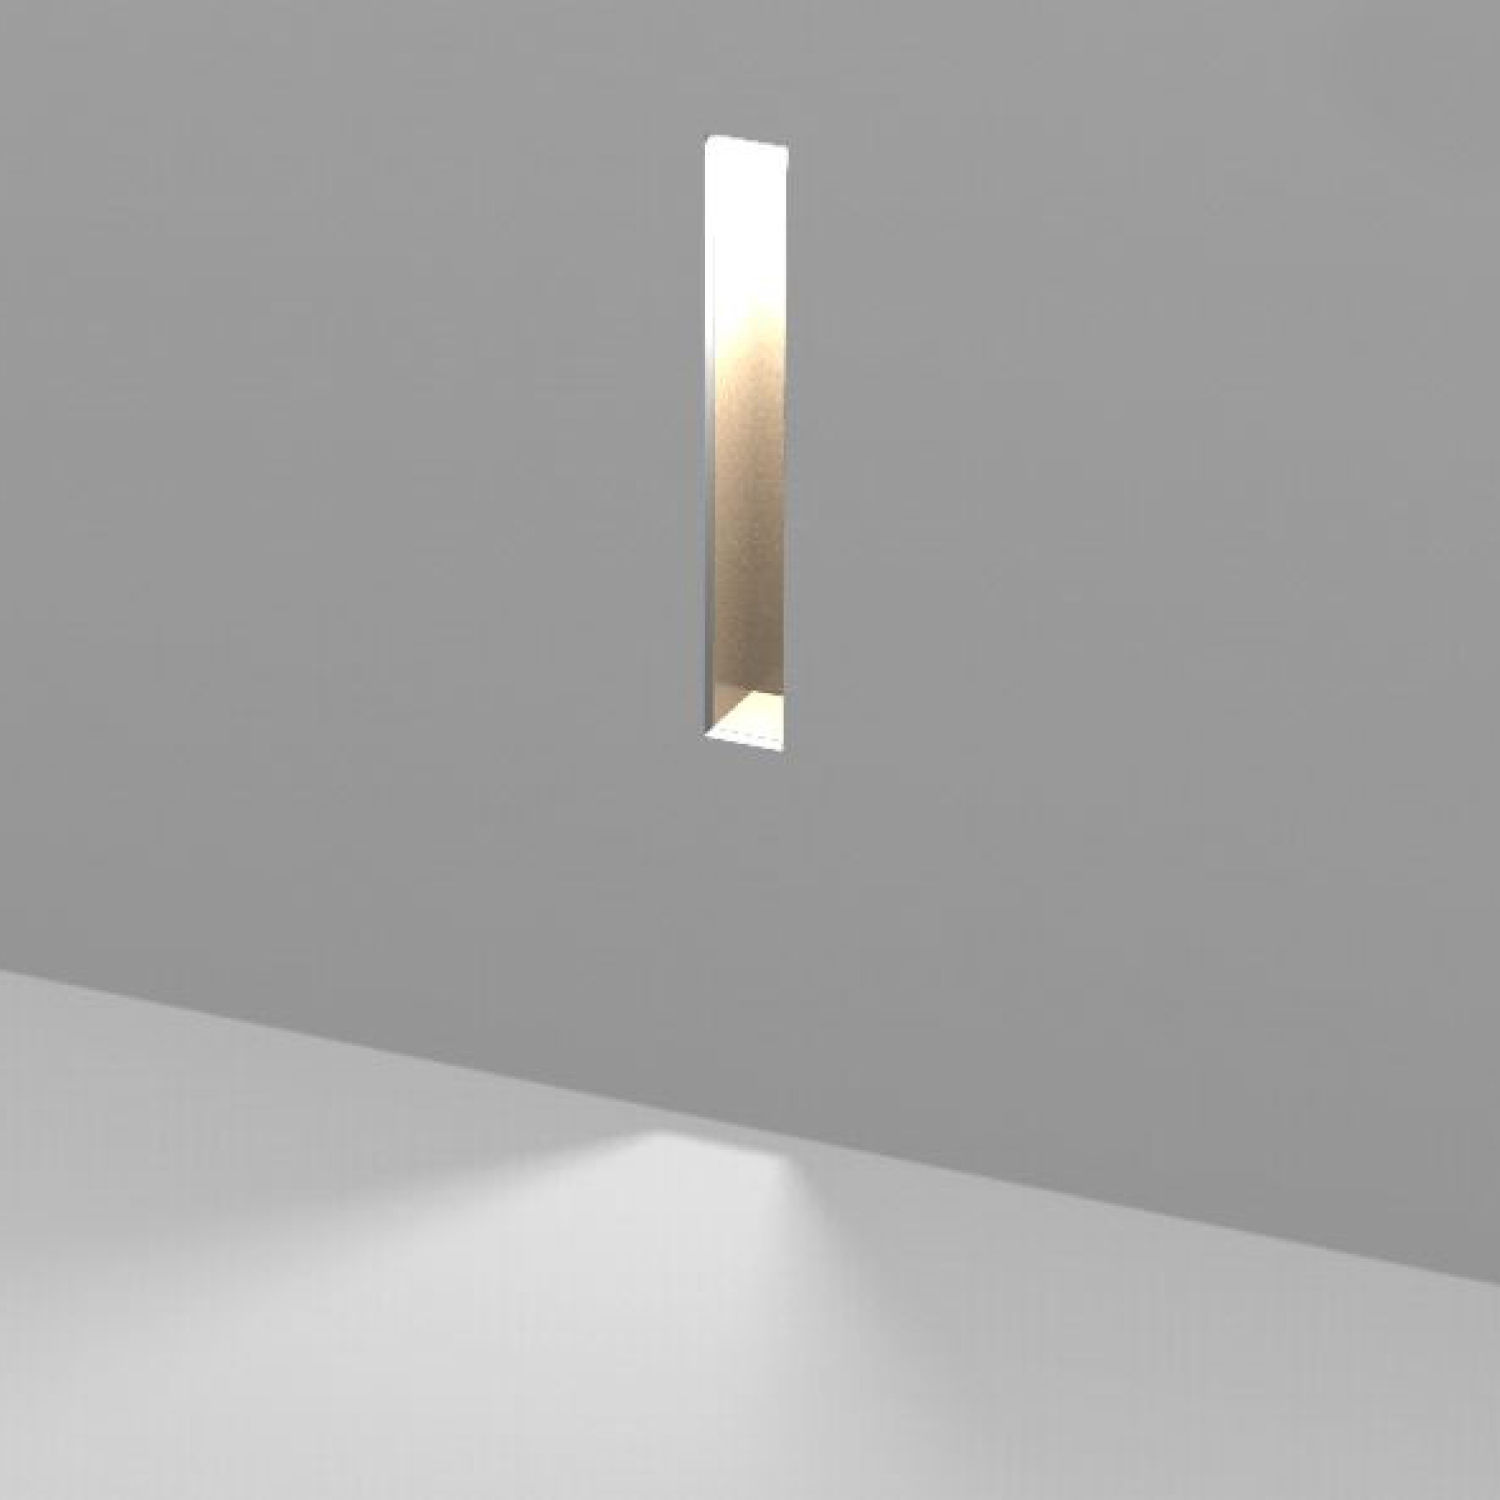 Recessed Wall Light Fixture Only Light Prolicht Led Linear Plaster